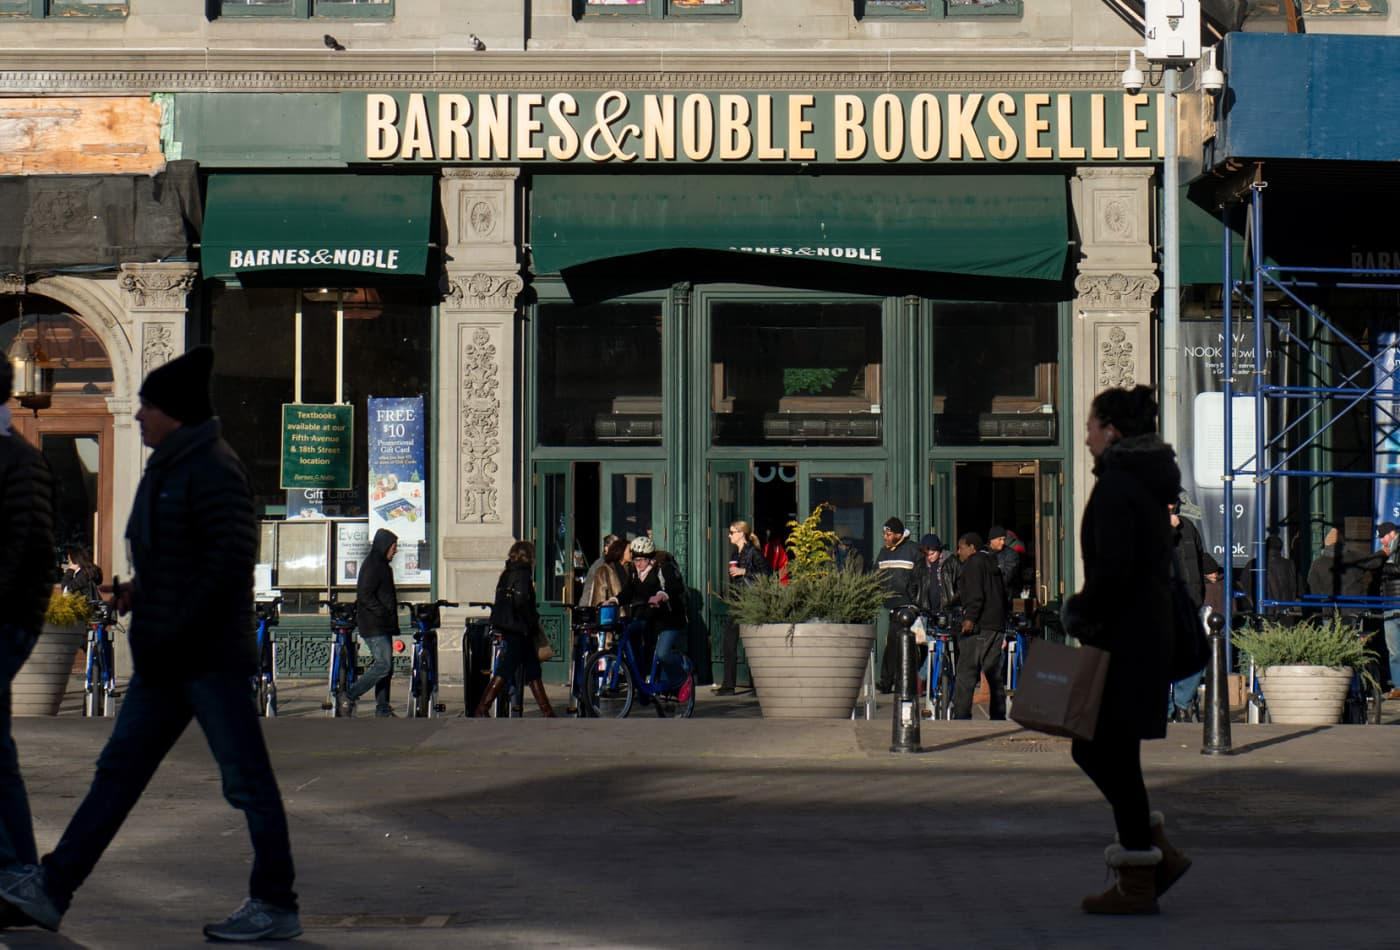 Barnes & Noble fires CEO Demos Parneros for violating company policies